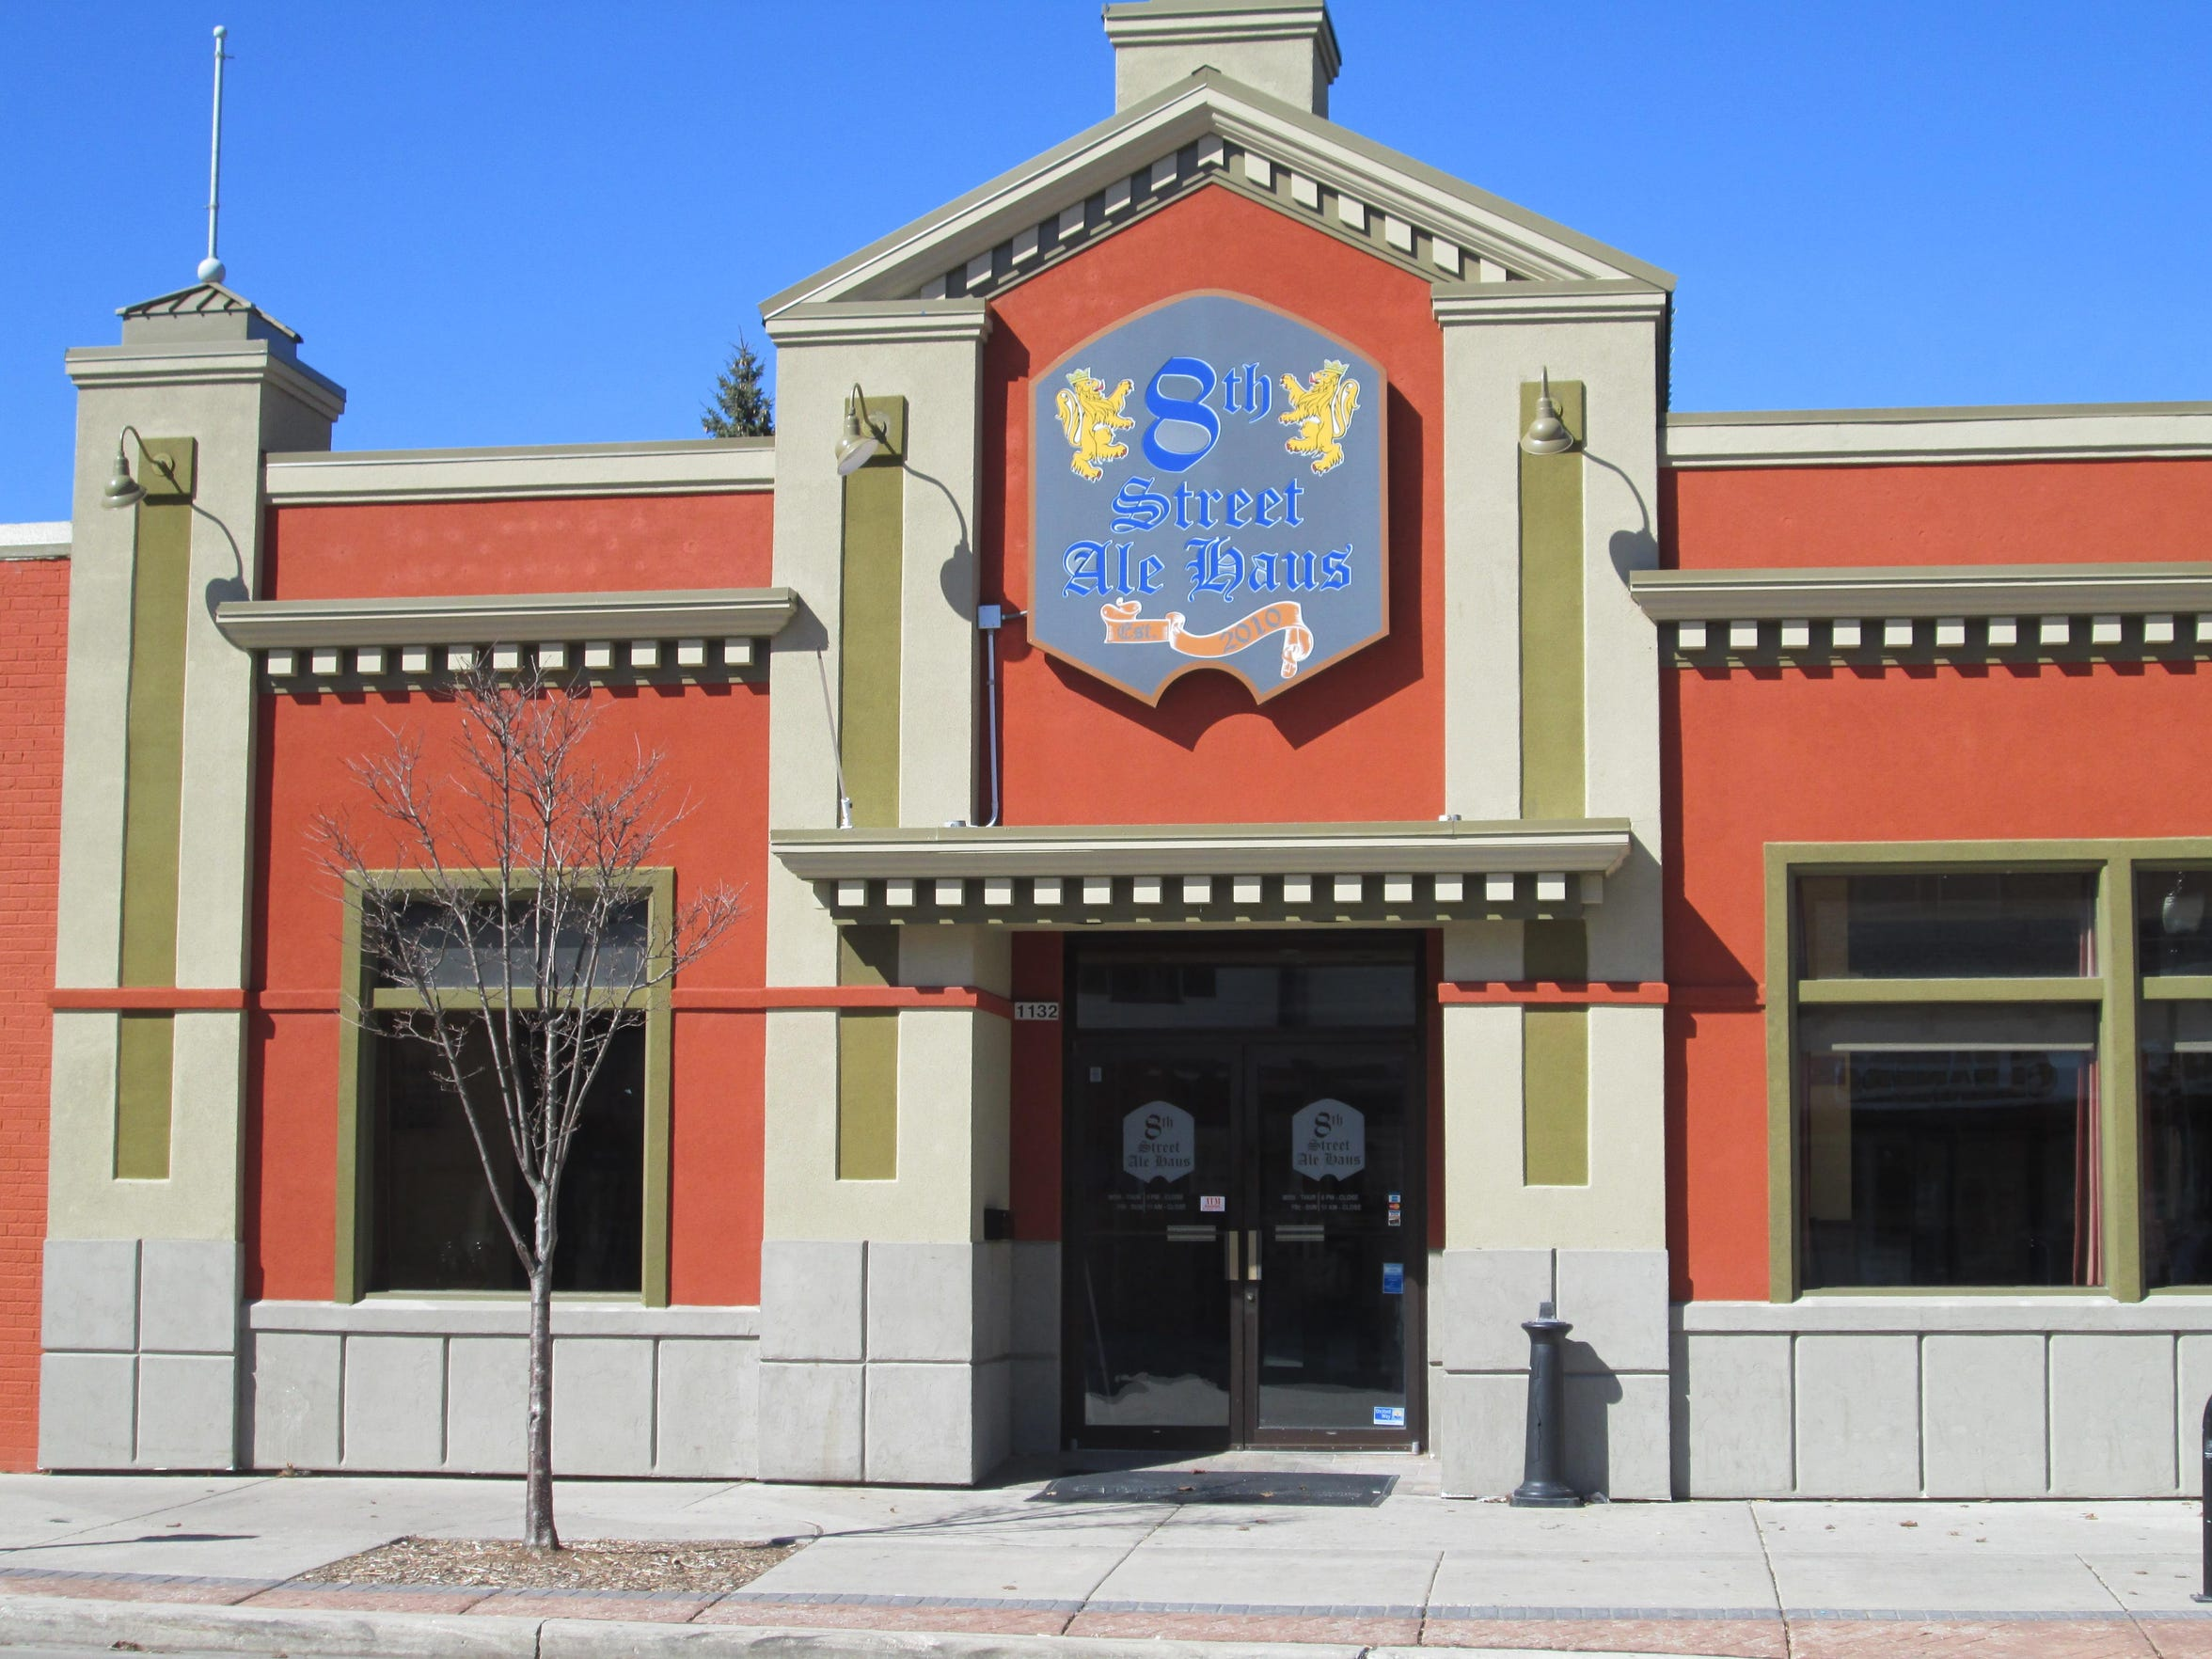 The 8th Street Ale Haus in downtown Sheboygan features